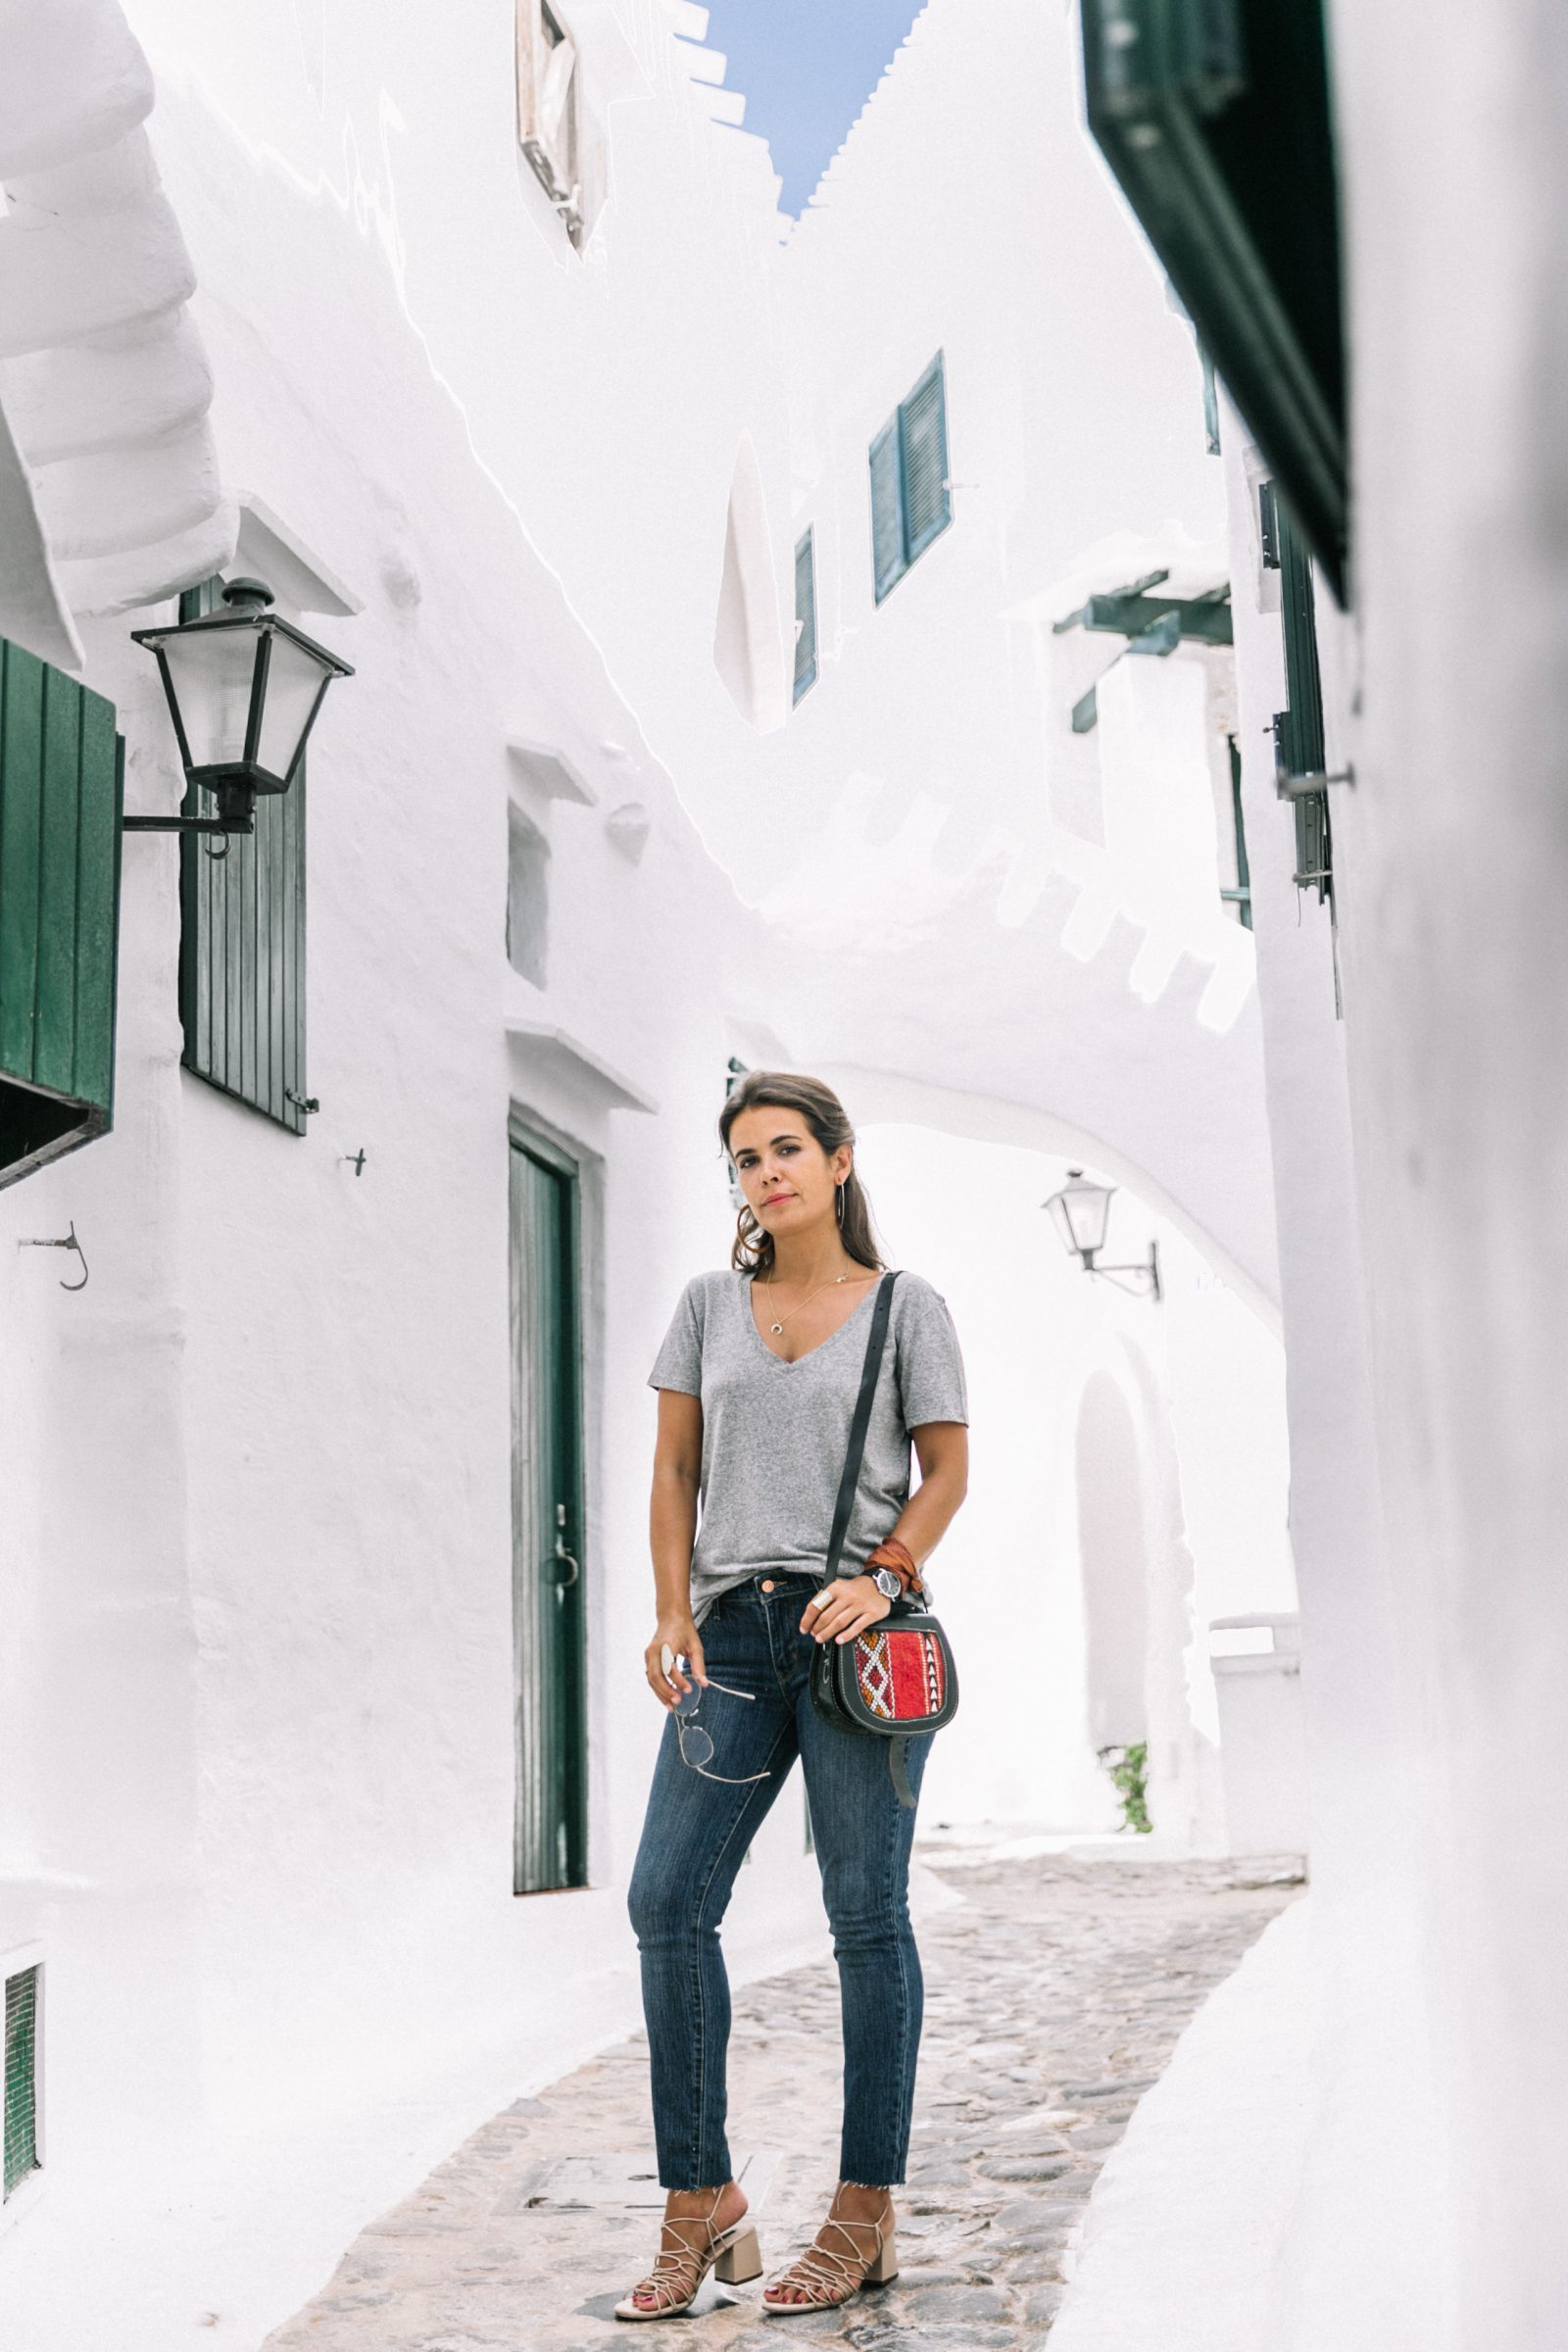 Live_in_Levis-Denim-Who_What_Wear-Levis-Denim-Double_Denim-Menorca-Street_Style-Collage_Vintage-11